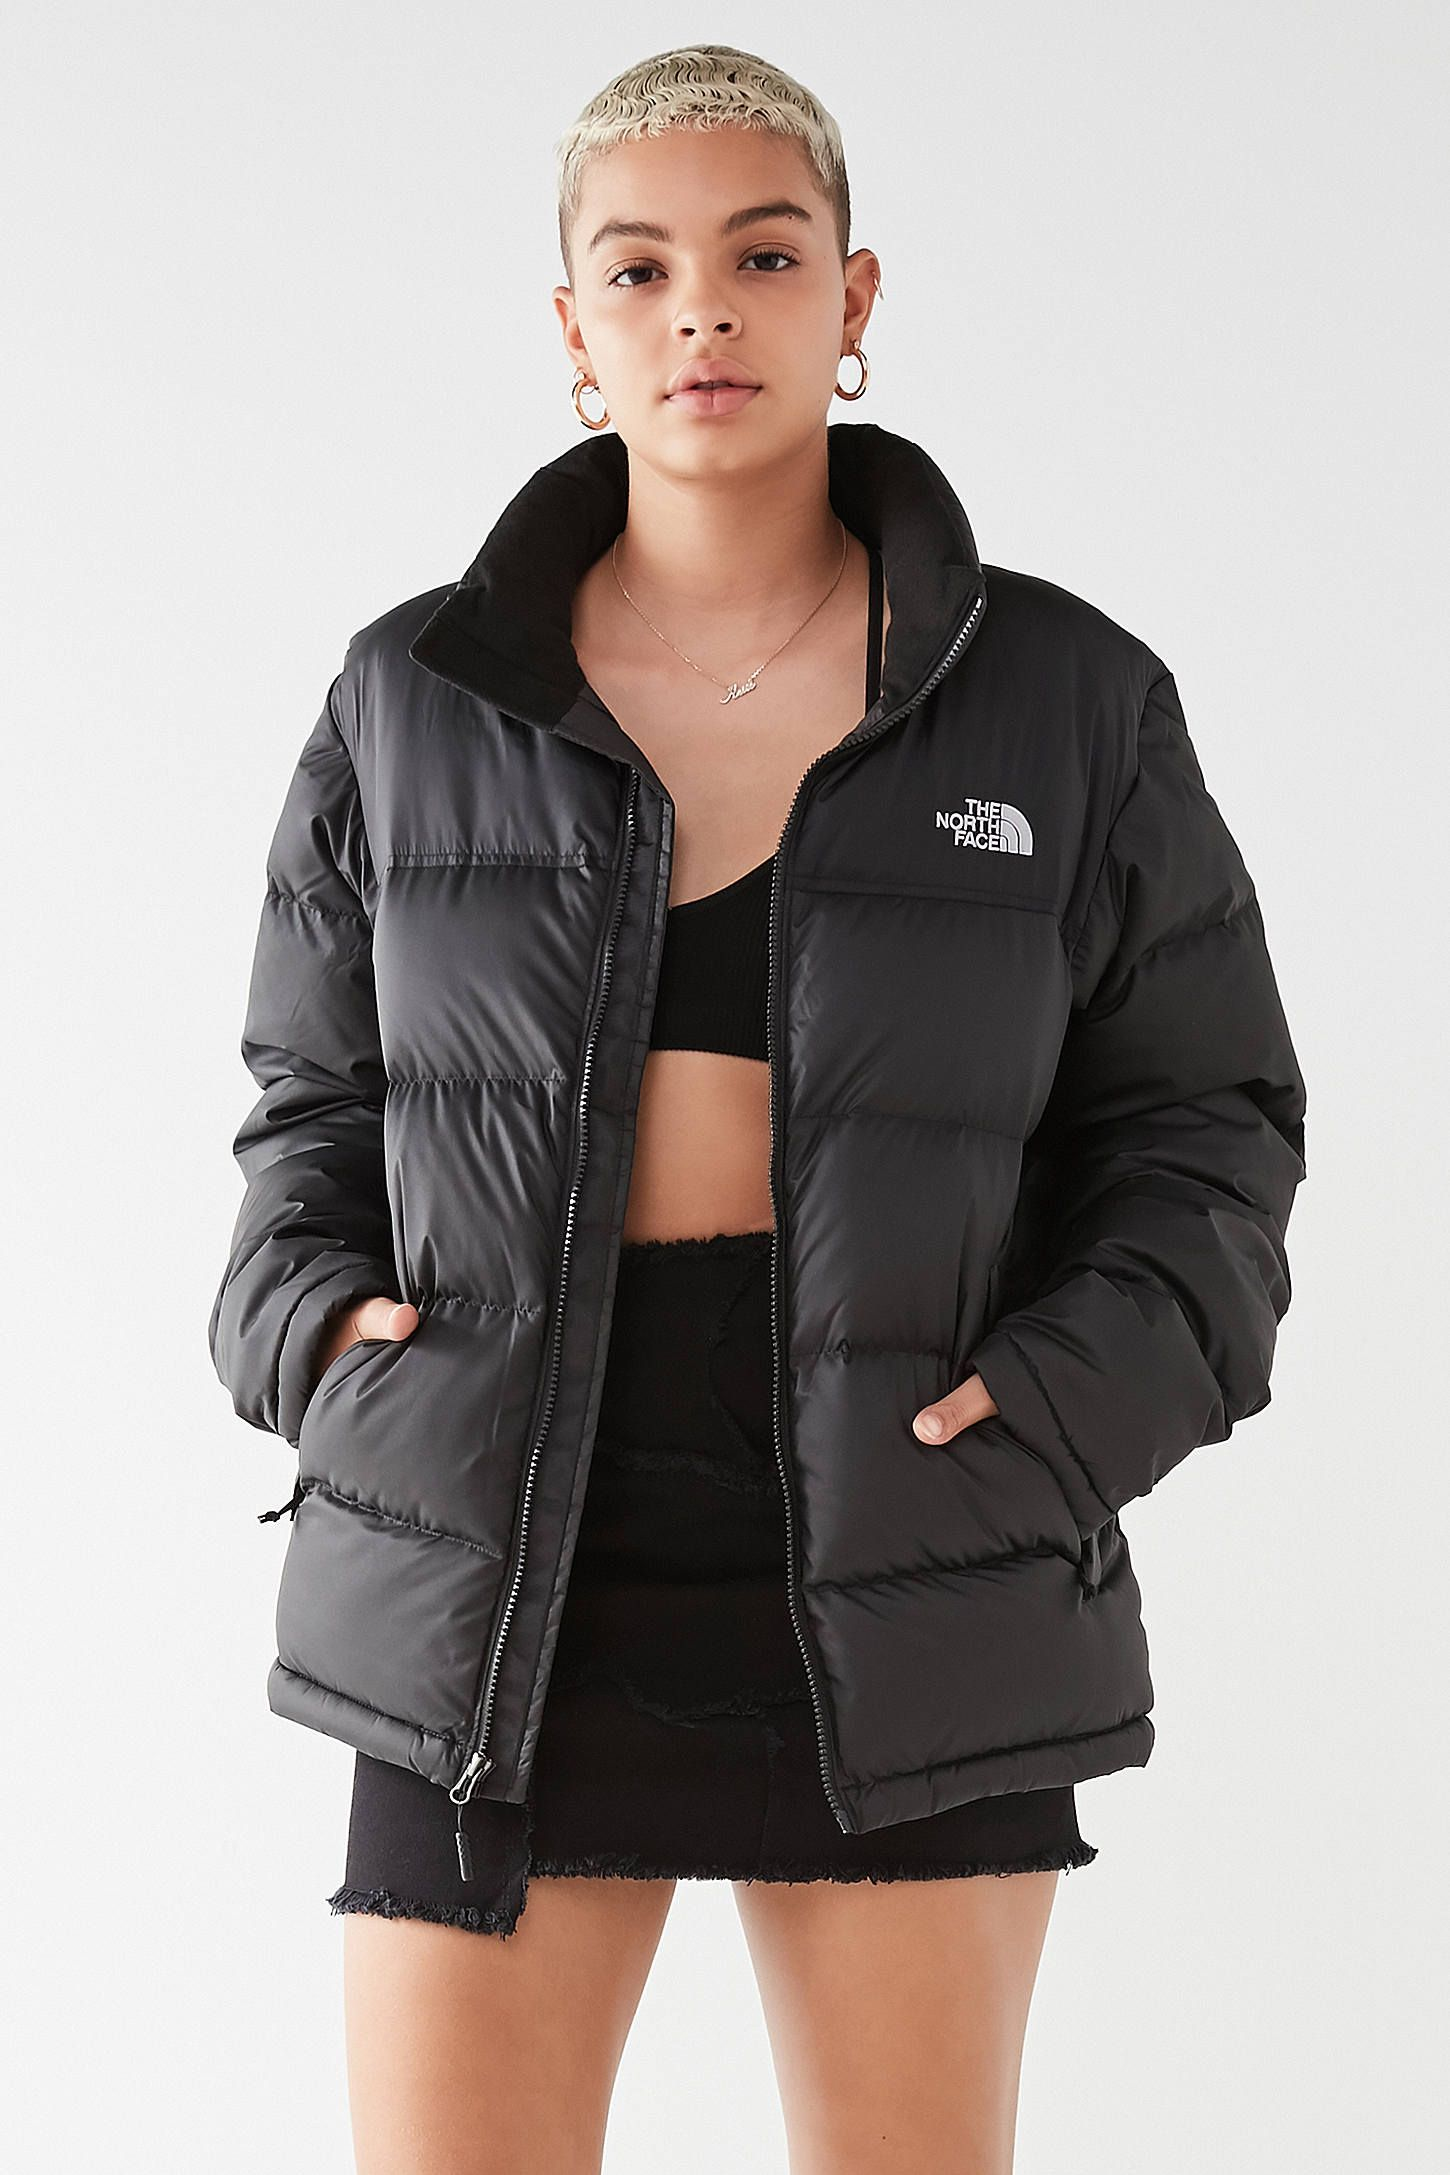 4276dd65f3 Shop The North Face Nuptse Puffer Jacket at Urban Outfitters today. We  carry all the